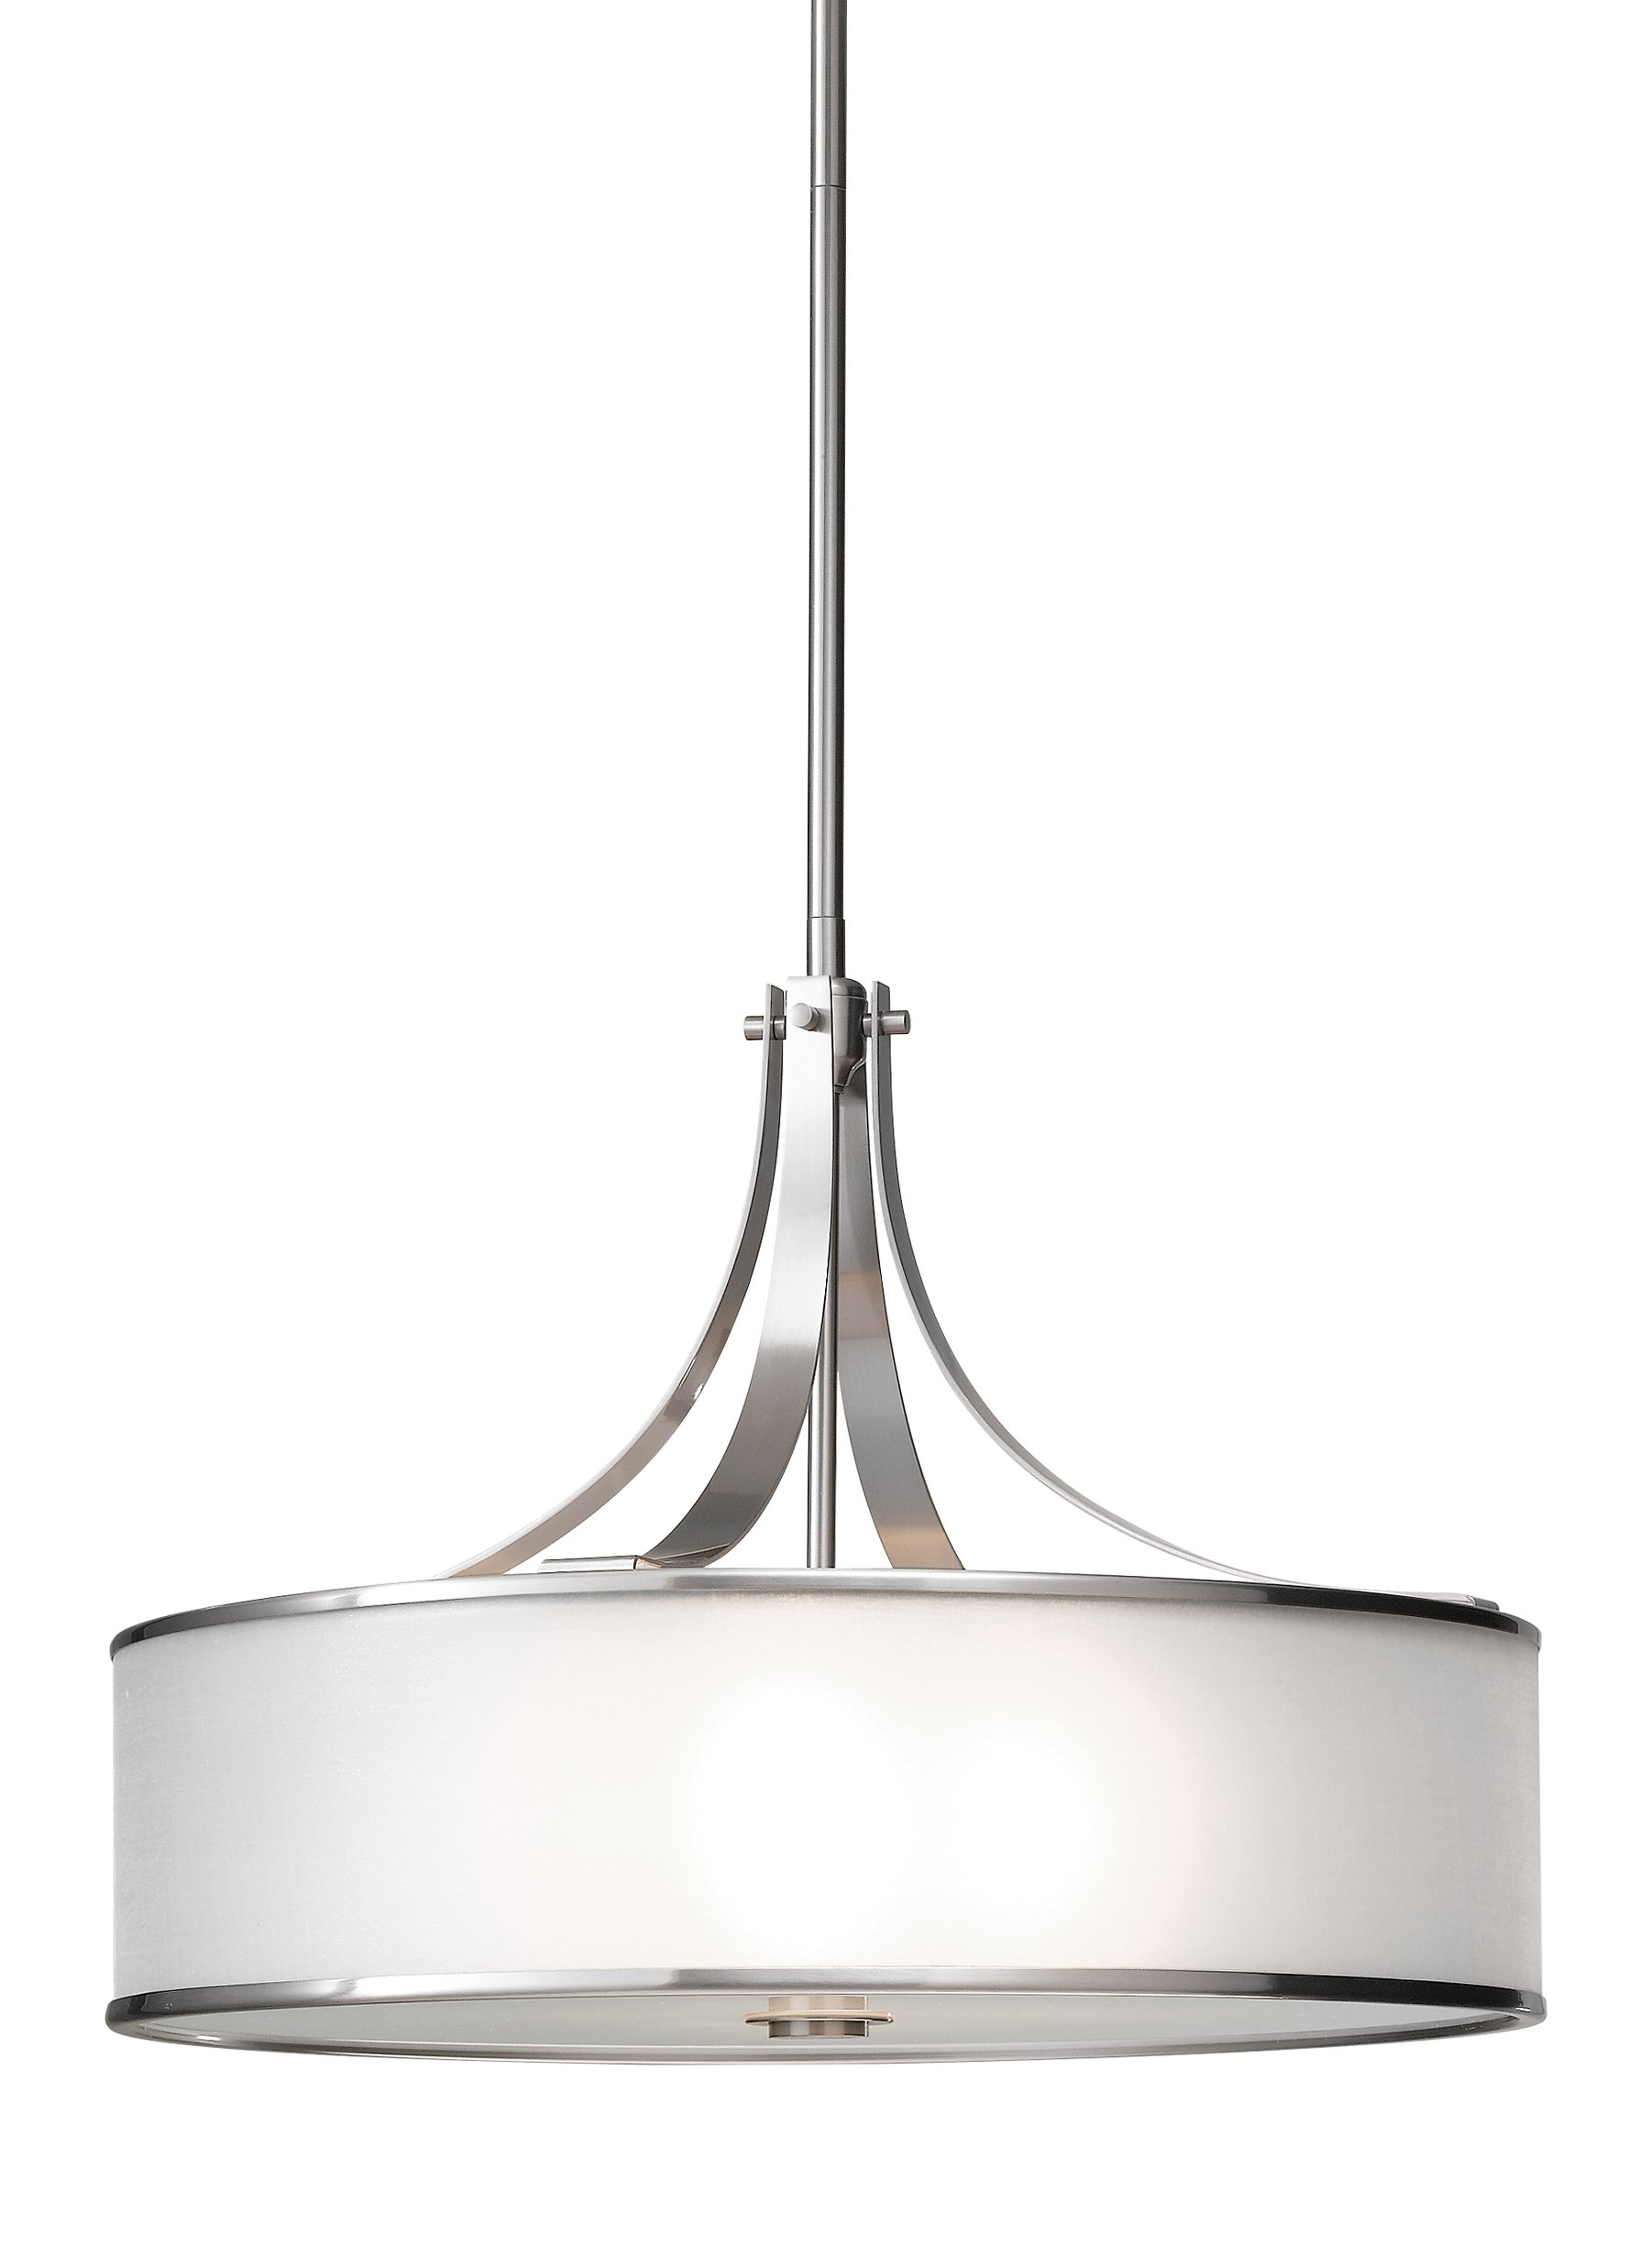 Feiss F2343/4BS Casual Luxury 4 Light Large Pendant, Brushed Steel